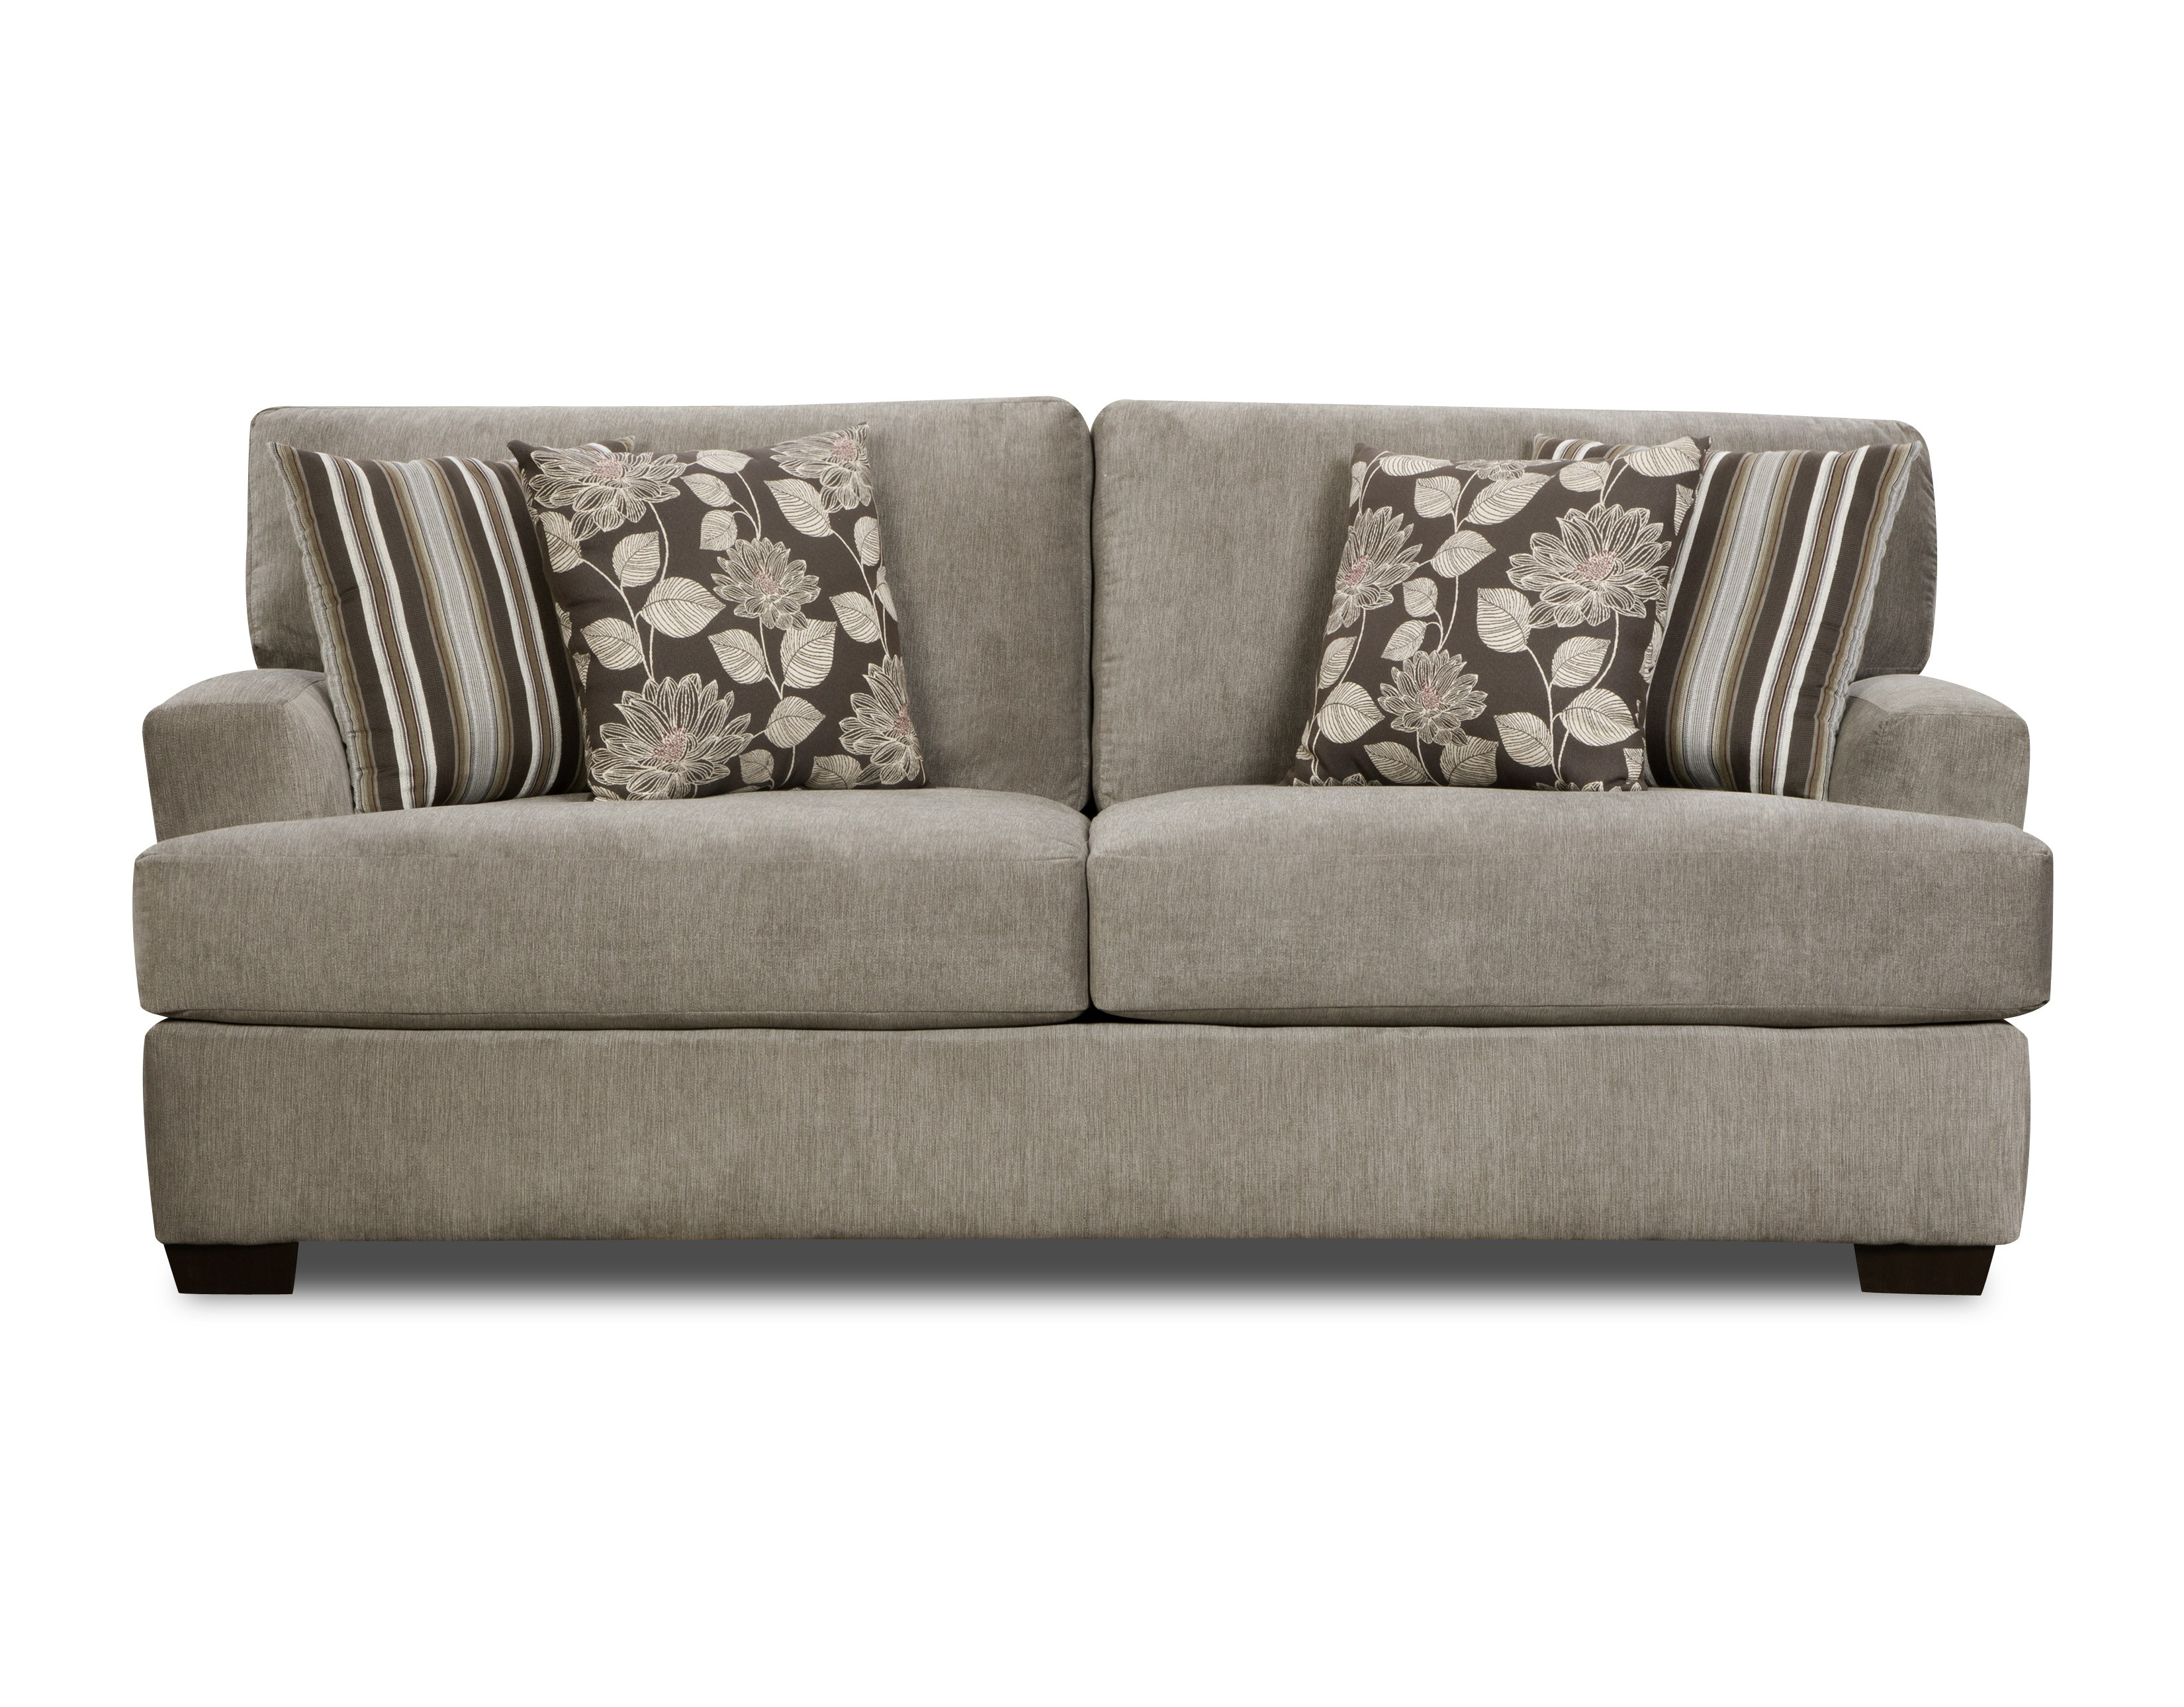 Featured Friday: Josephine Sofa and Loveseat